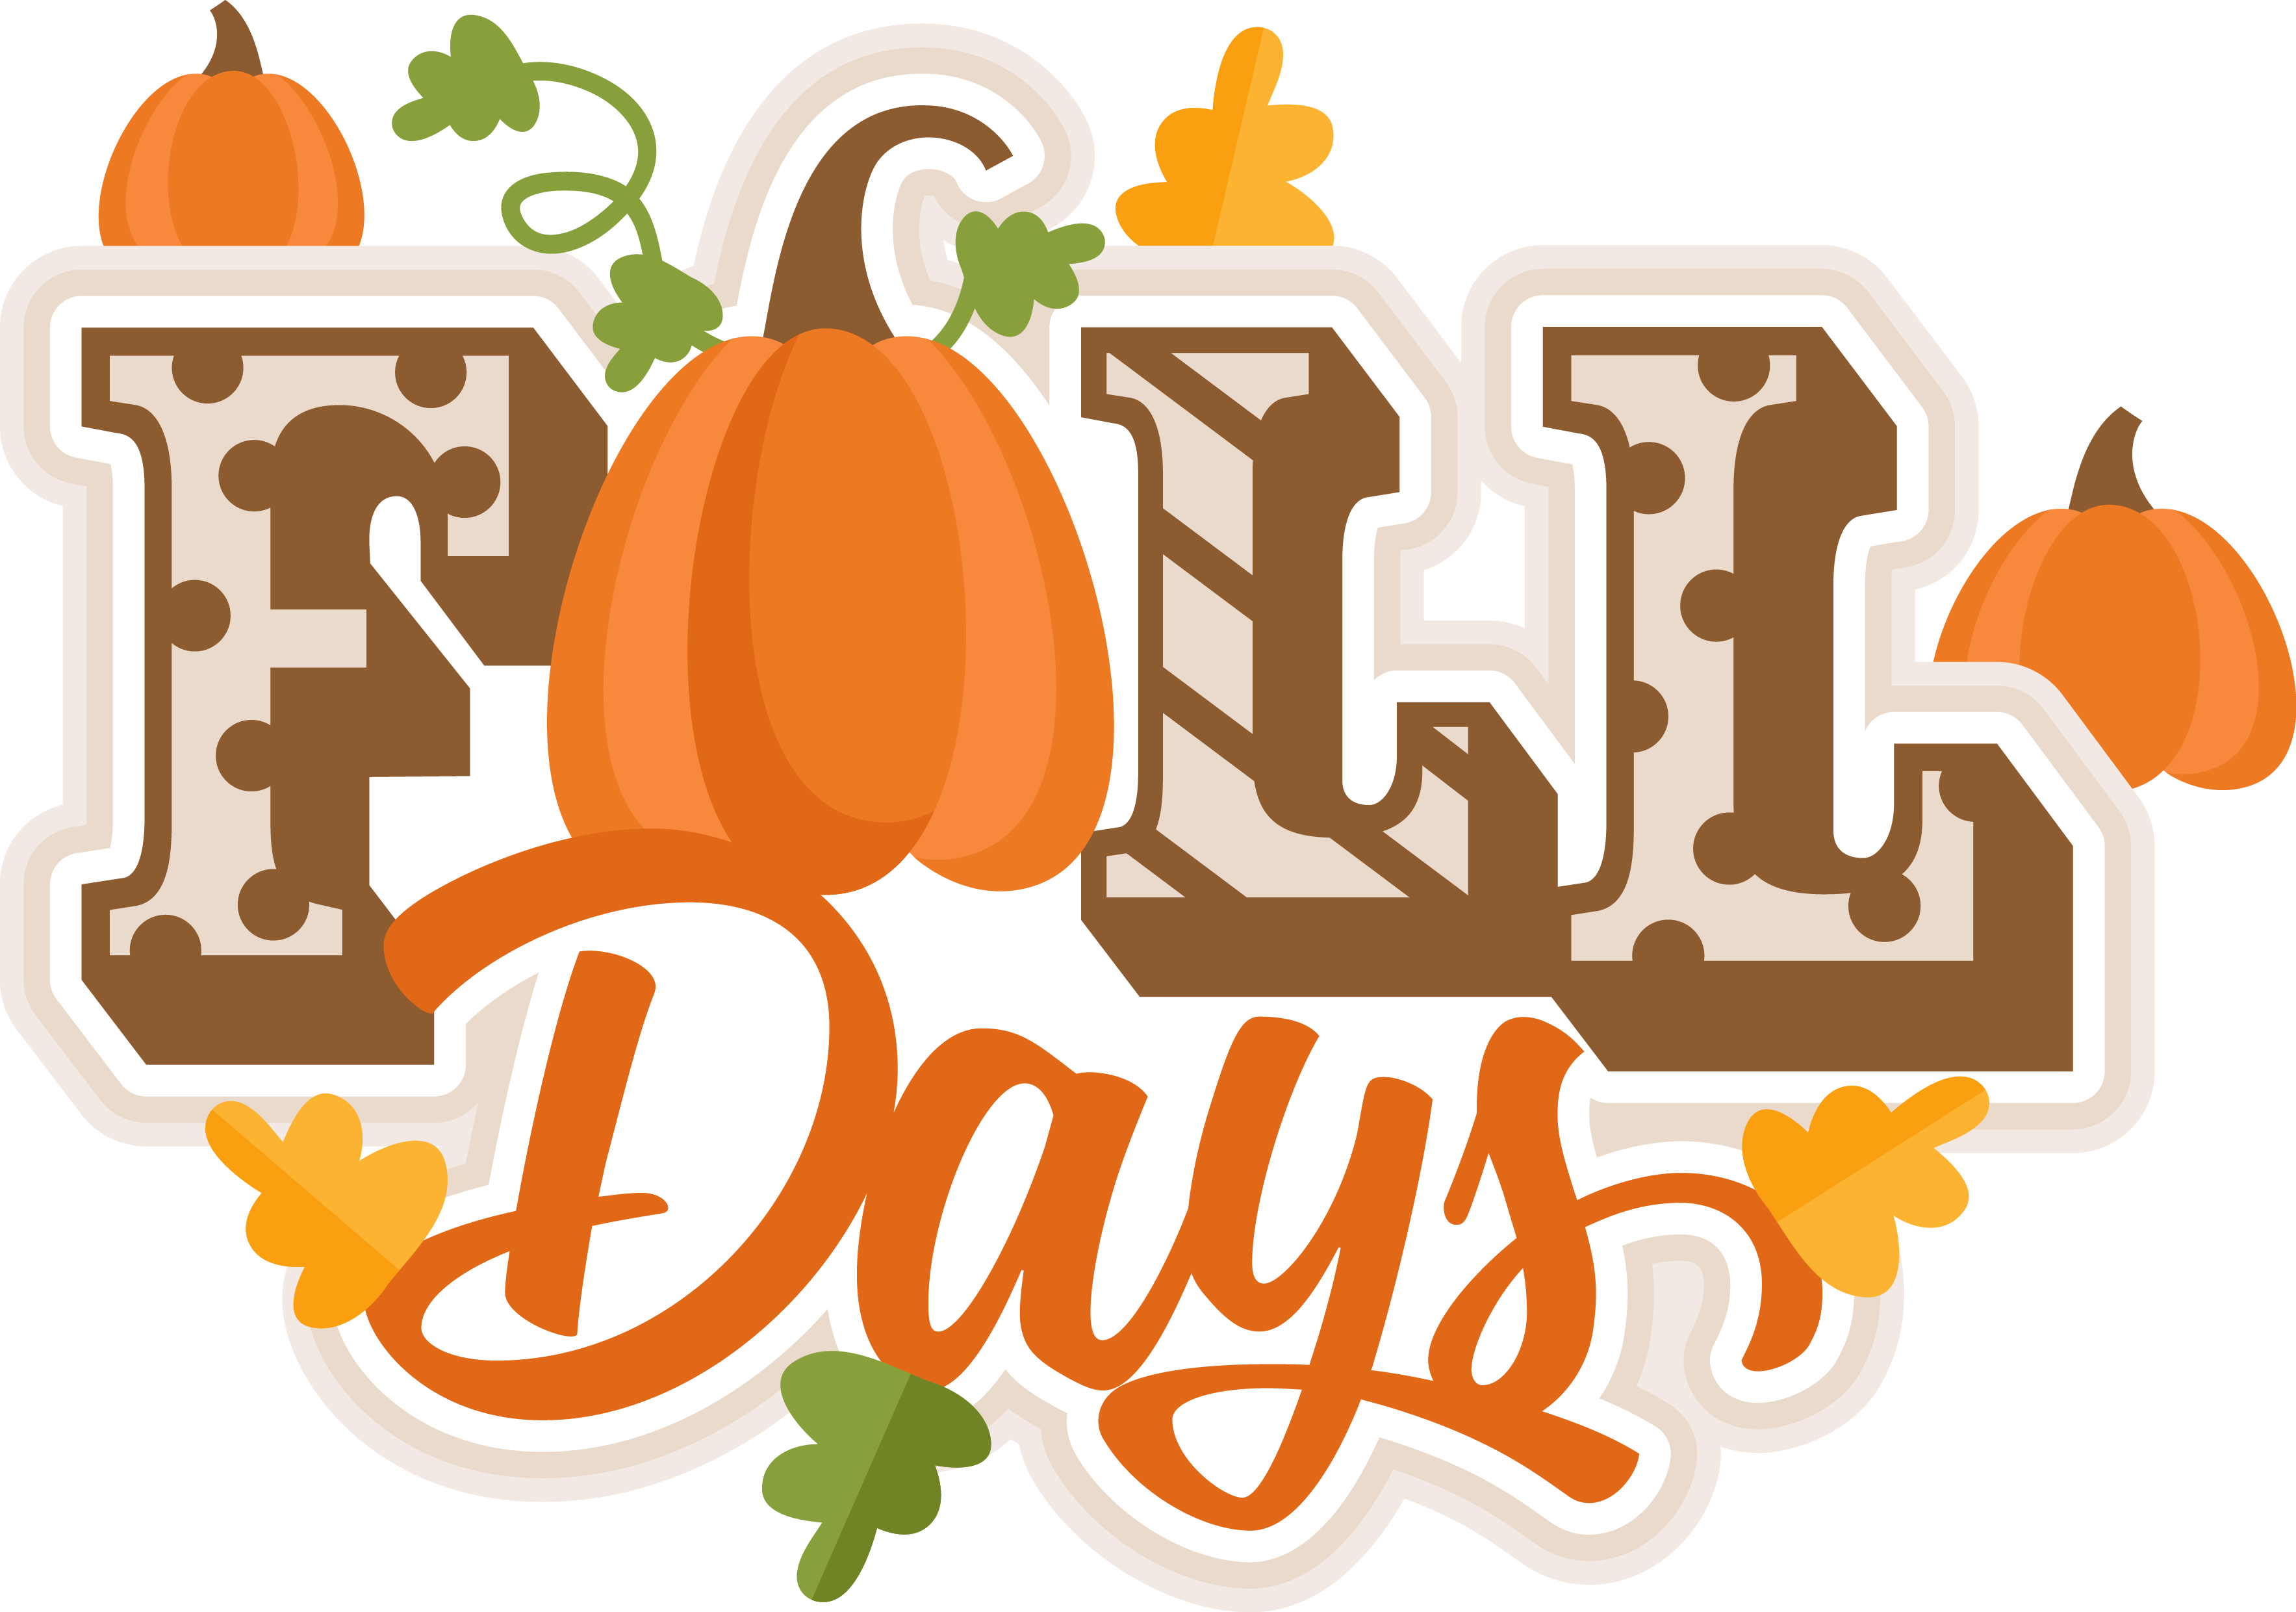 Free happy pumpkin spice season clipart banner freeuse stock MKC_FallDaysTitle_SVG | S_SVG_MKC_Miss Kate Cuttables | Pinterest banner freeuse stock